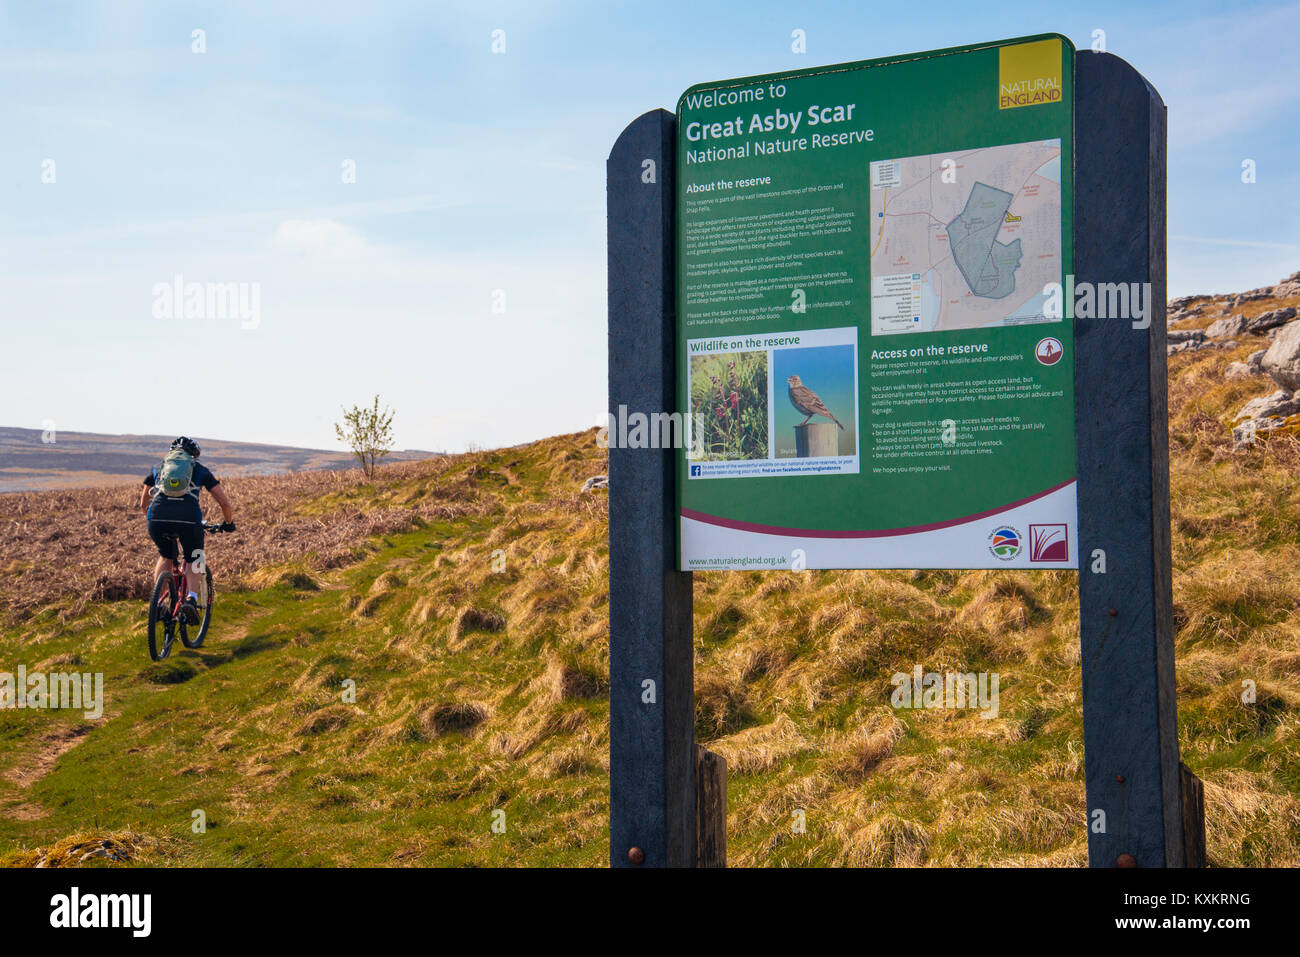 Female mountain biker passing Nature Reserve sign at Great Asby Scar National Nature Reserve in Cumbria - Stock Image